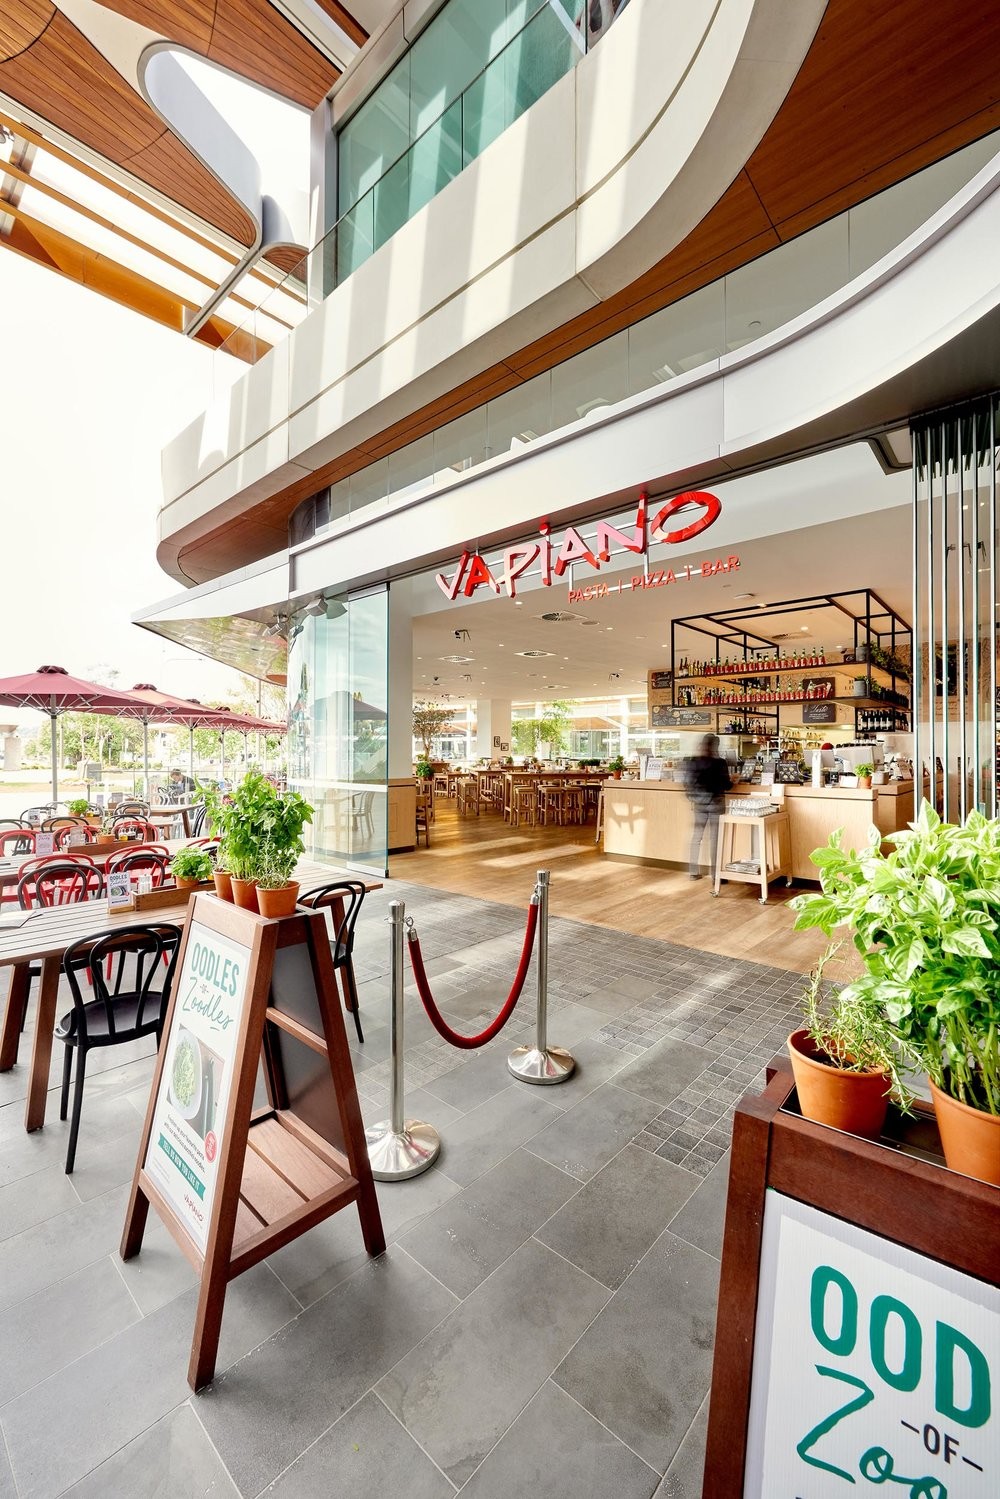 Architecture Toowoomba Vapiano Restaurant external - Brisbane Advertising Photography, Brisbane Commercial Photography.jpg